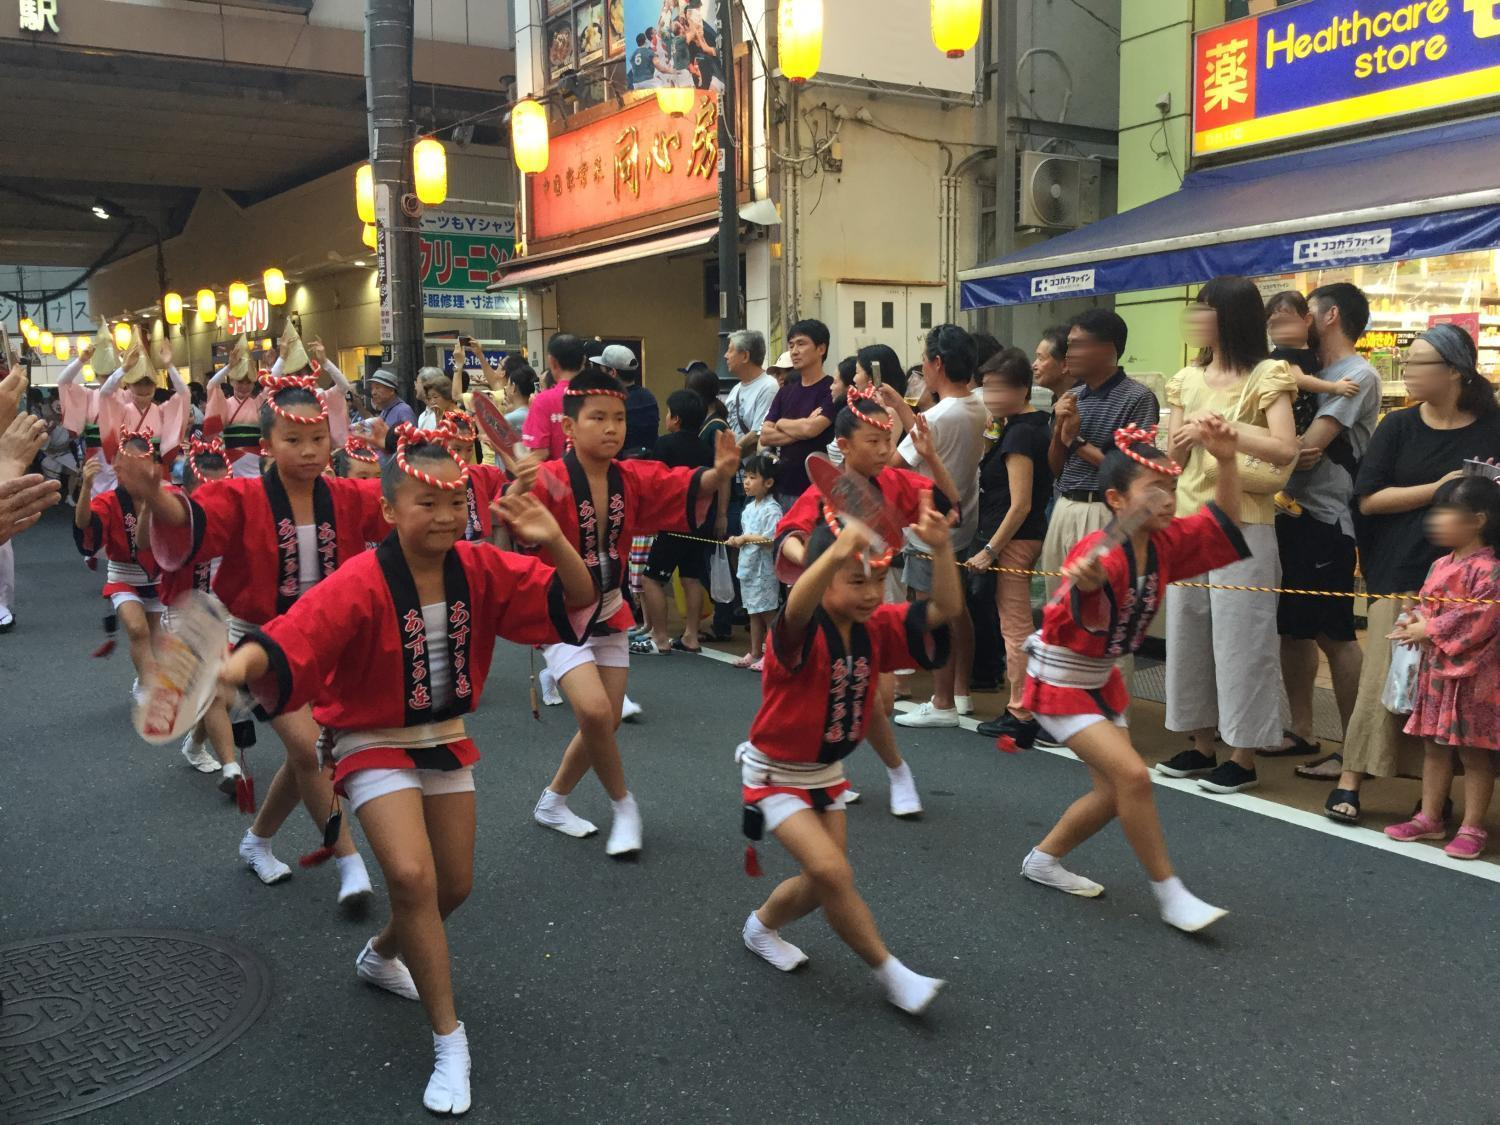 We do our best. Dance girls image of child